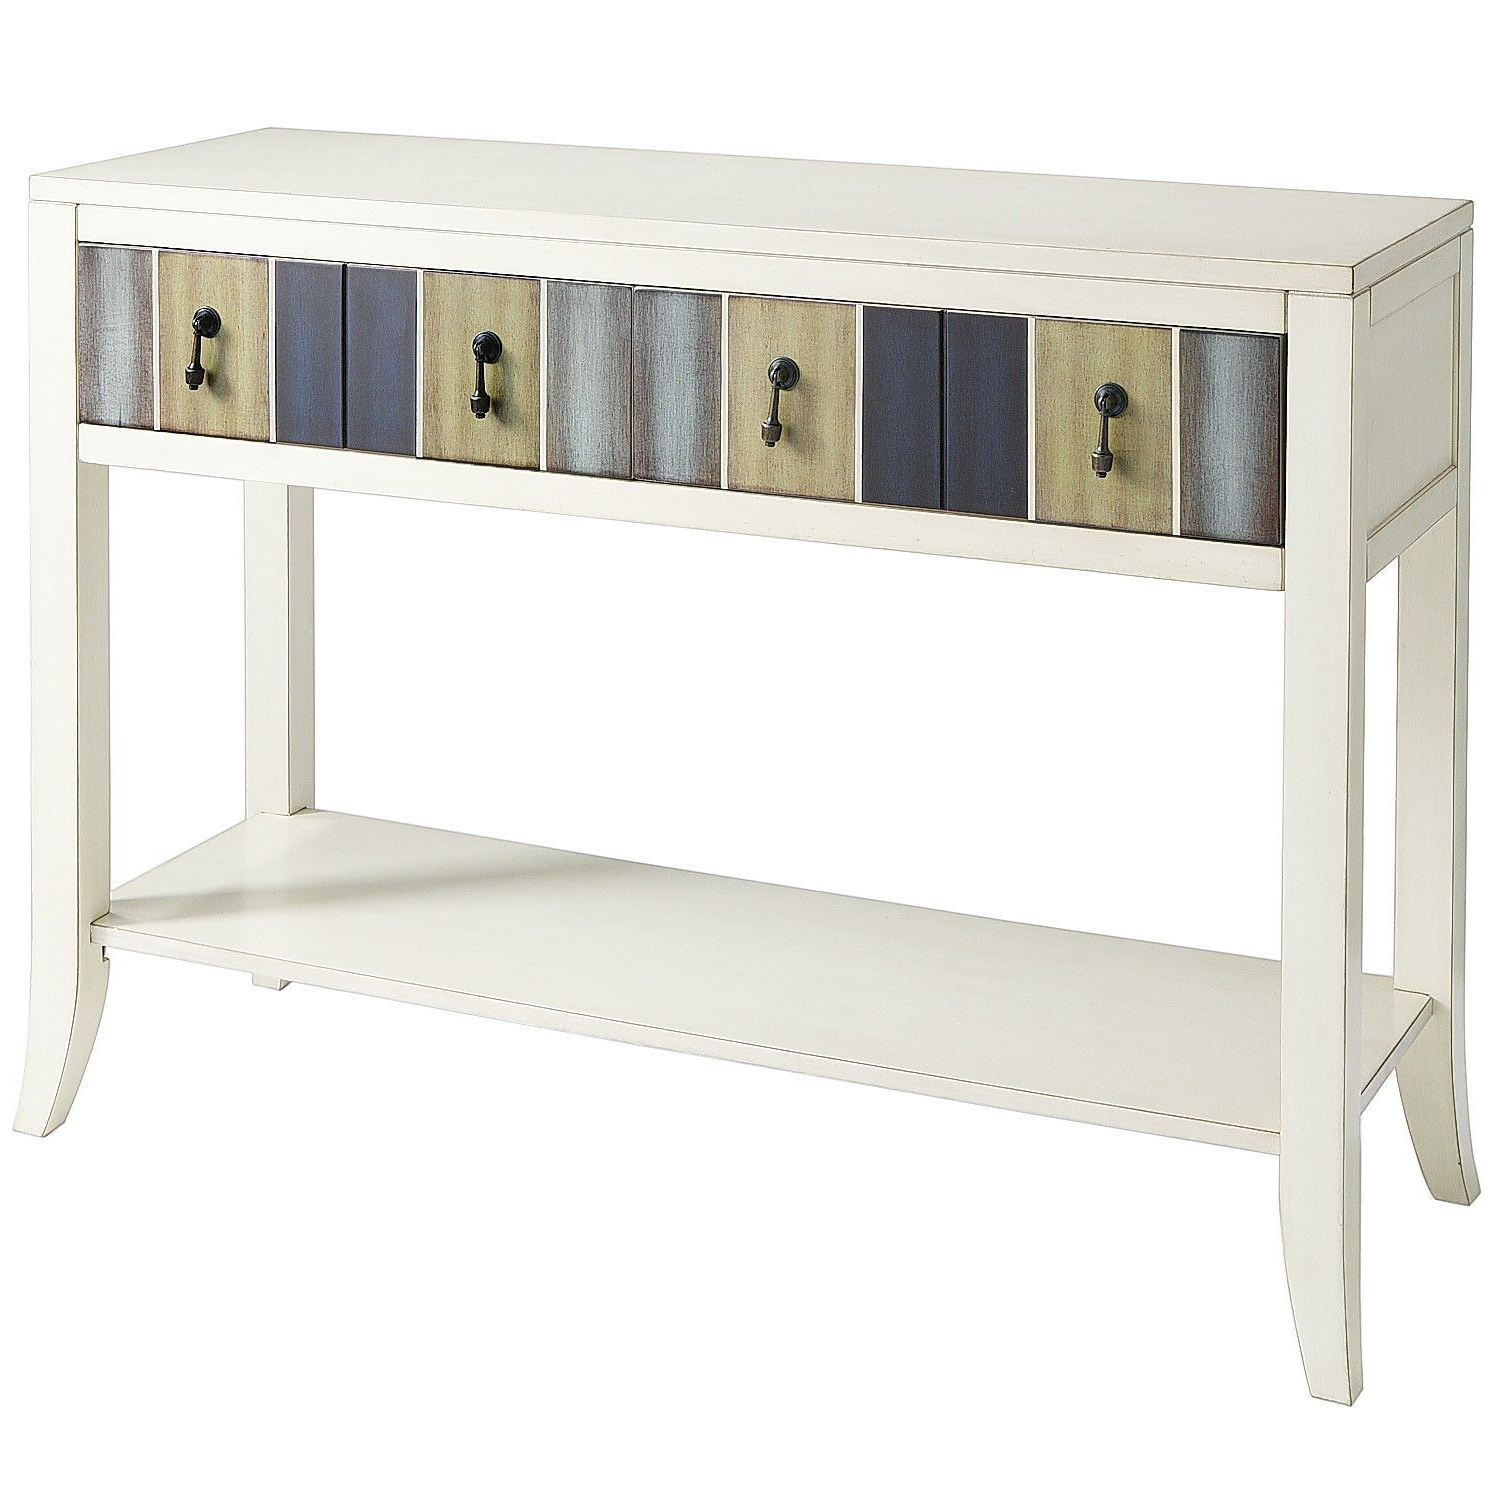 Truett Console Table | Console Tables | Pinterest | Console Tables Pertaining To Parsons Grey Solid Surface Top & Stainless Steel Base 48X16 Console Tables (Gallery 3 of 20)